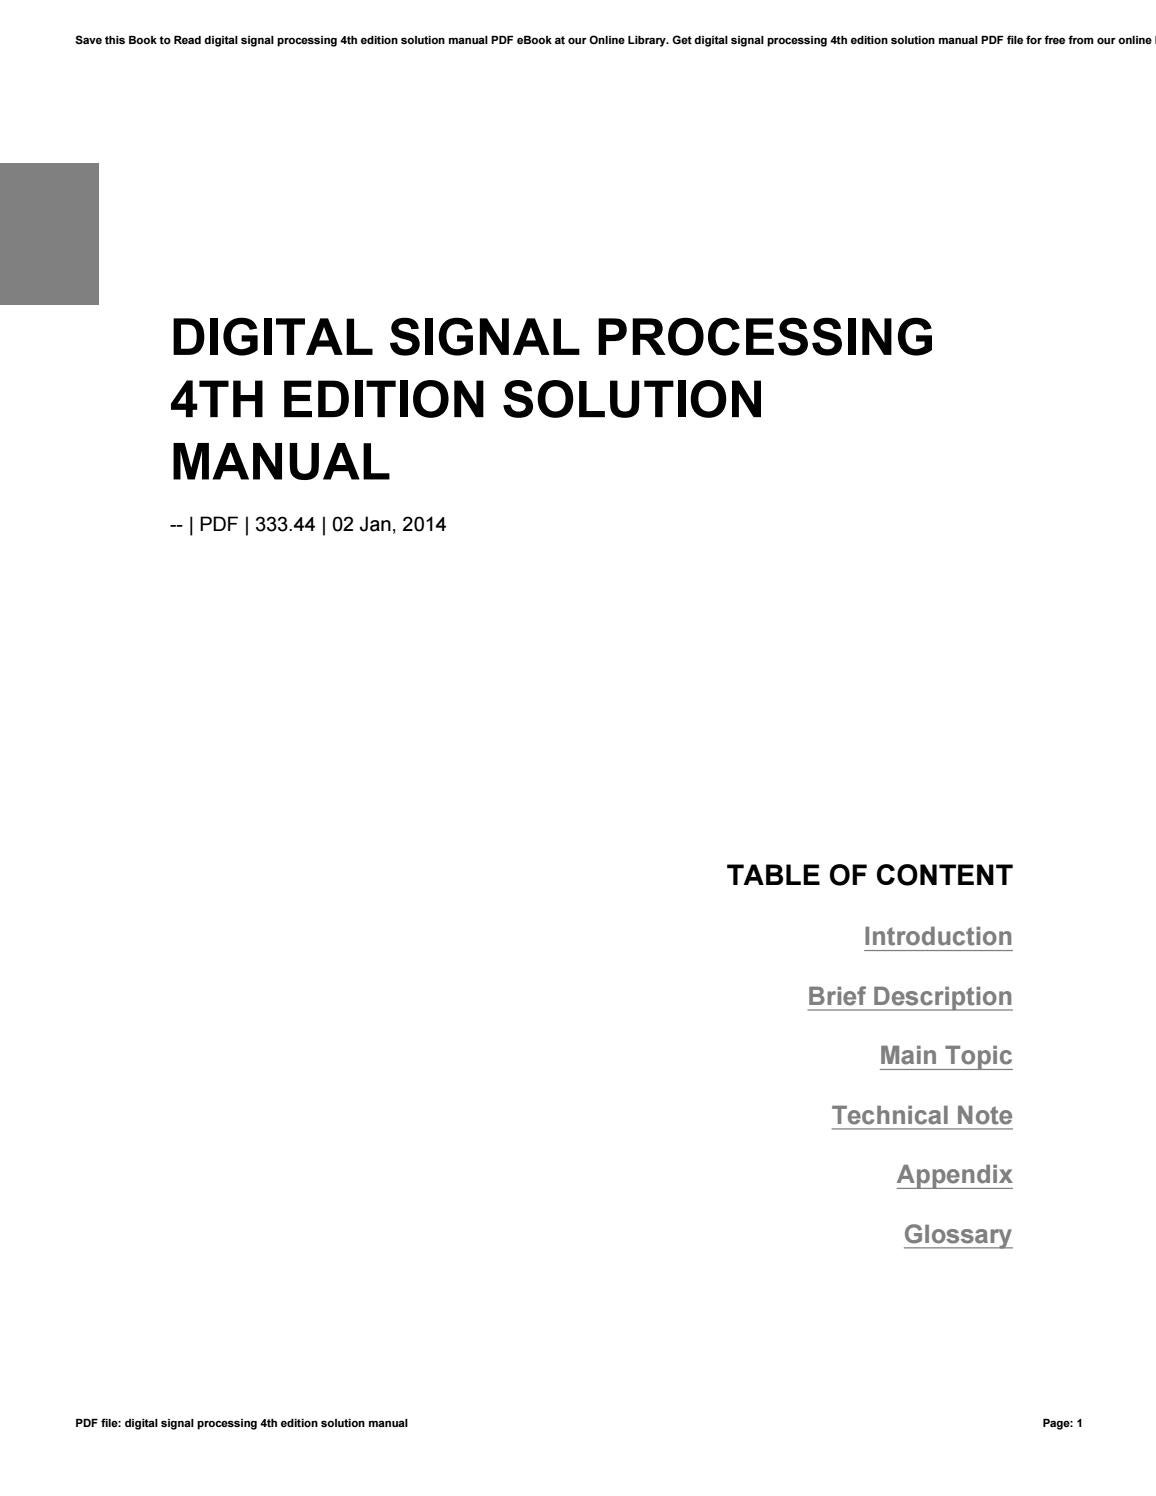 digital signal processing 4th edition solution manual by rh issuu com digital  signal processing solution manual antoniou digital signal processing  solution ...